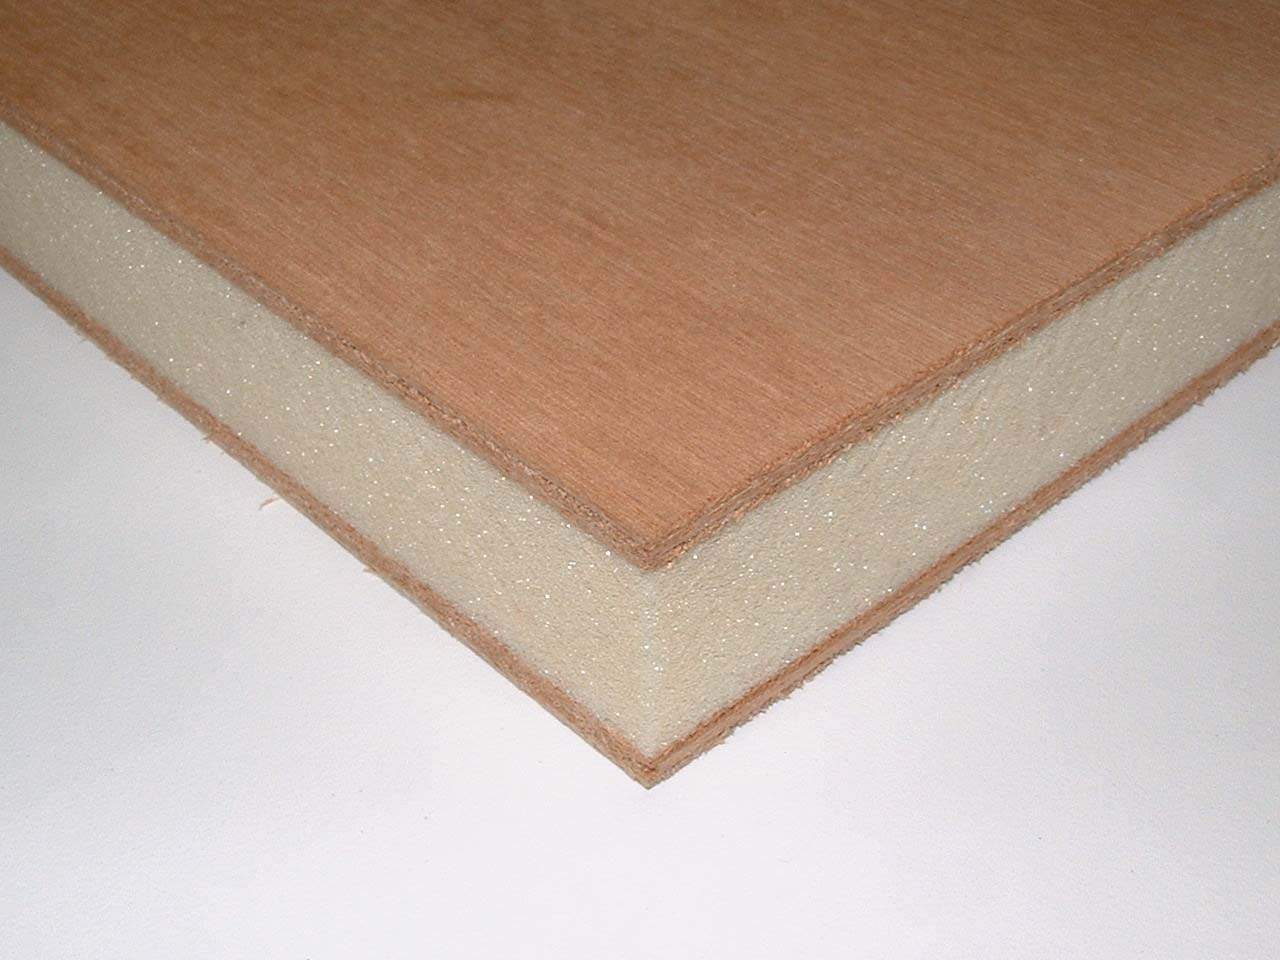 Weight Of Lumber Plywood ~ Types of plywood buying guide